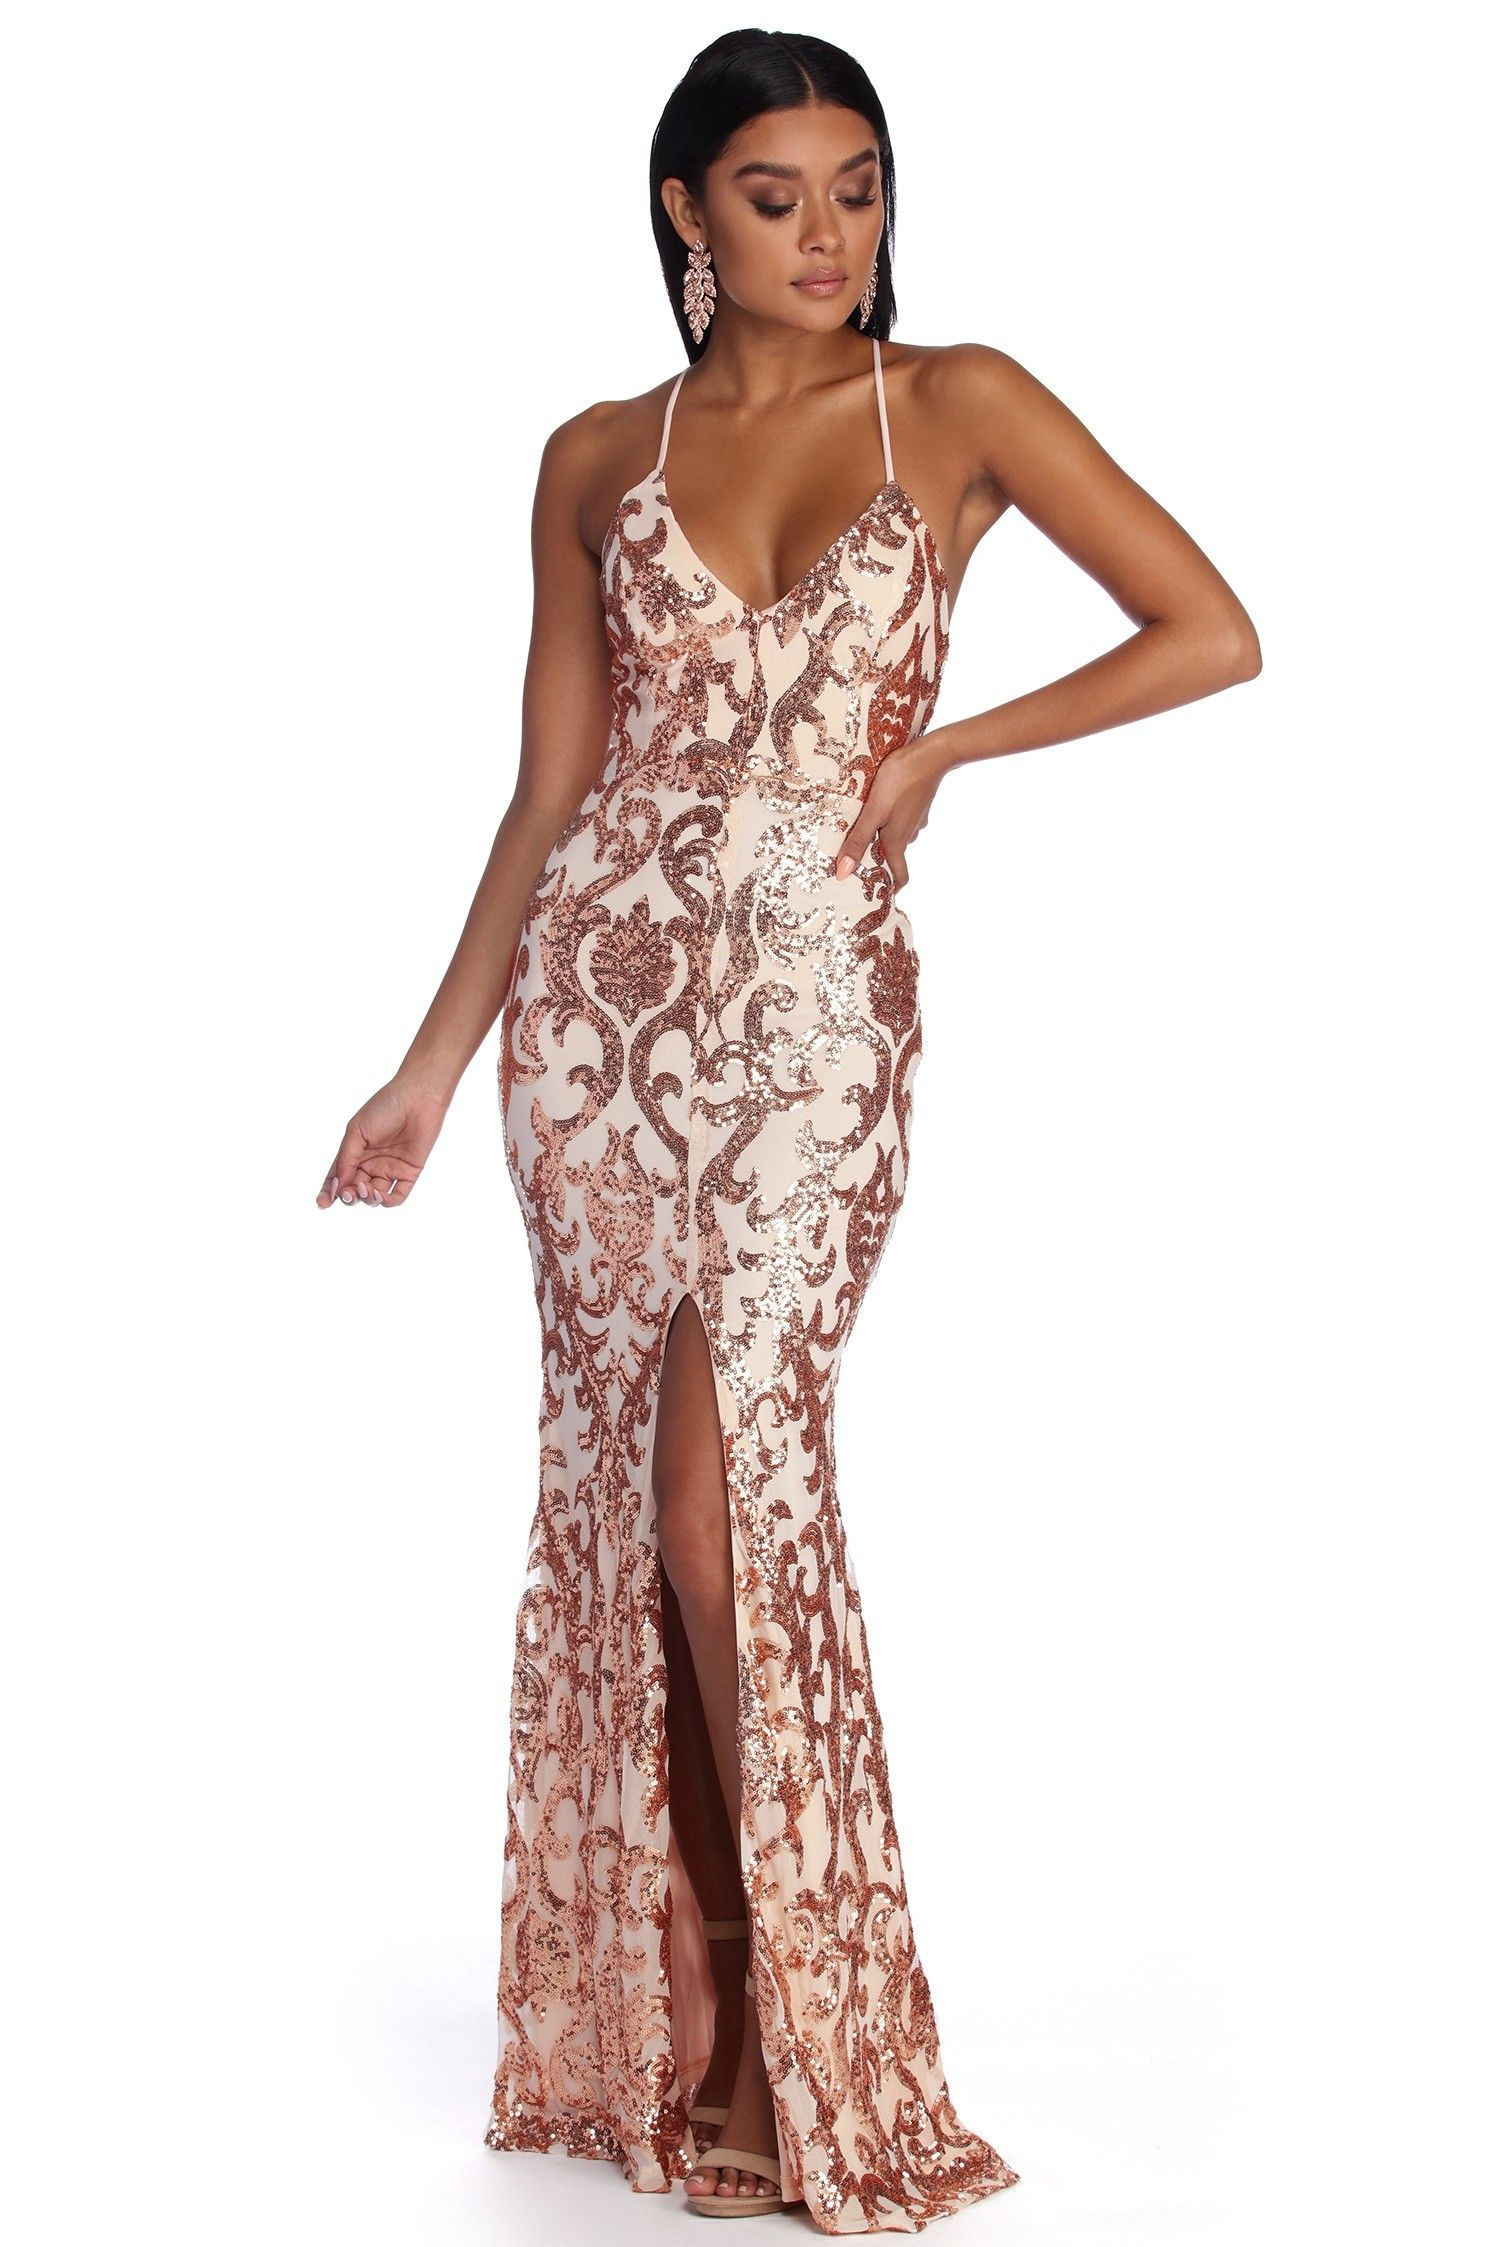 2a9f0ad907c7a Kaylani Formal Sequin Scroll Dress in 2019 | Potential dresses ...